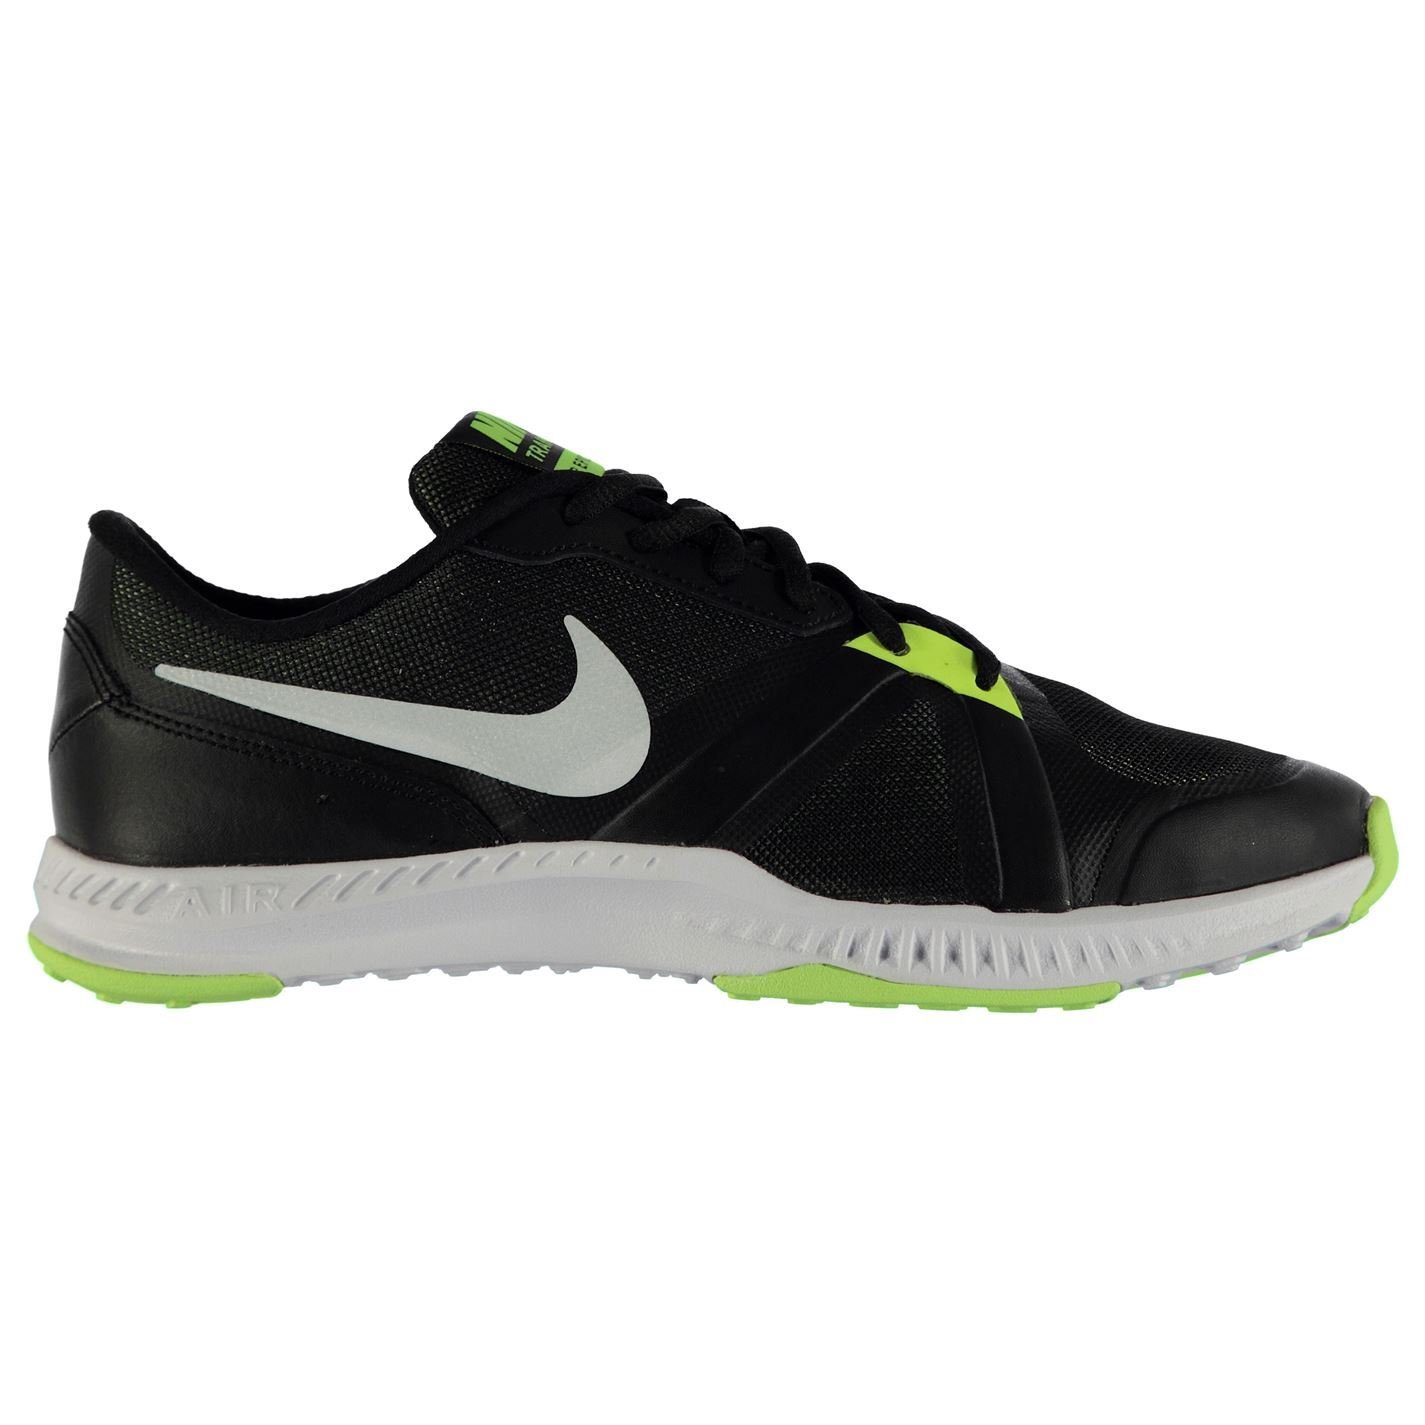 ... Nike Air Epic Speed Training Shoes Mens Black/White/Volt Gym Trainers  Sneakers ...